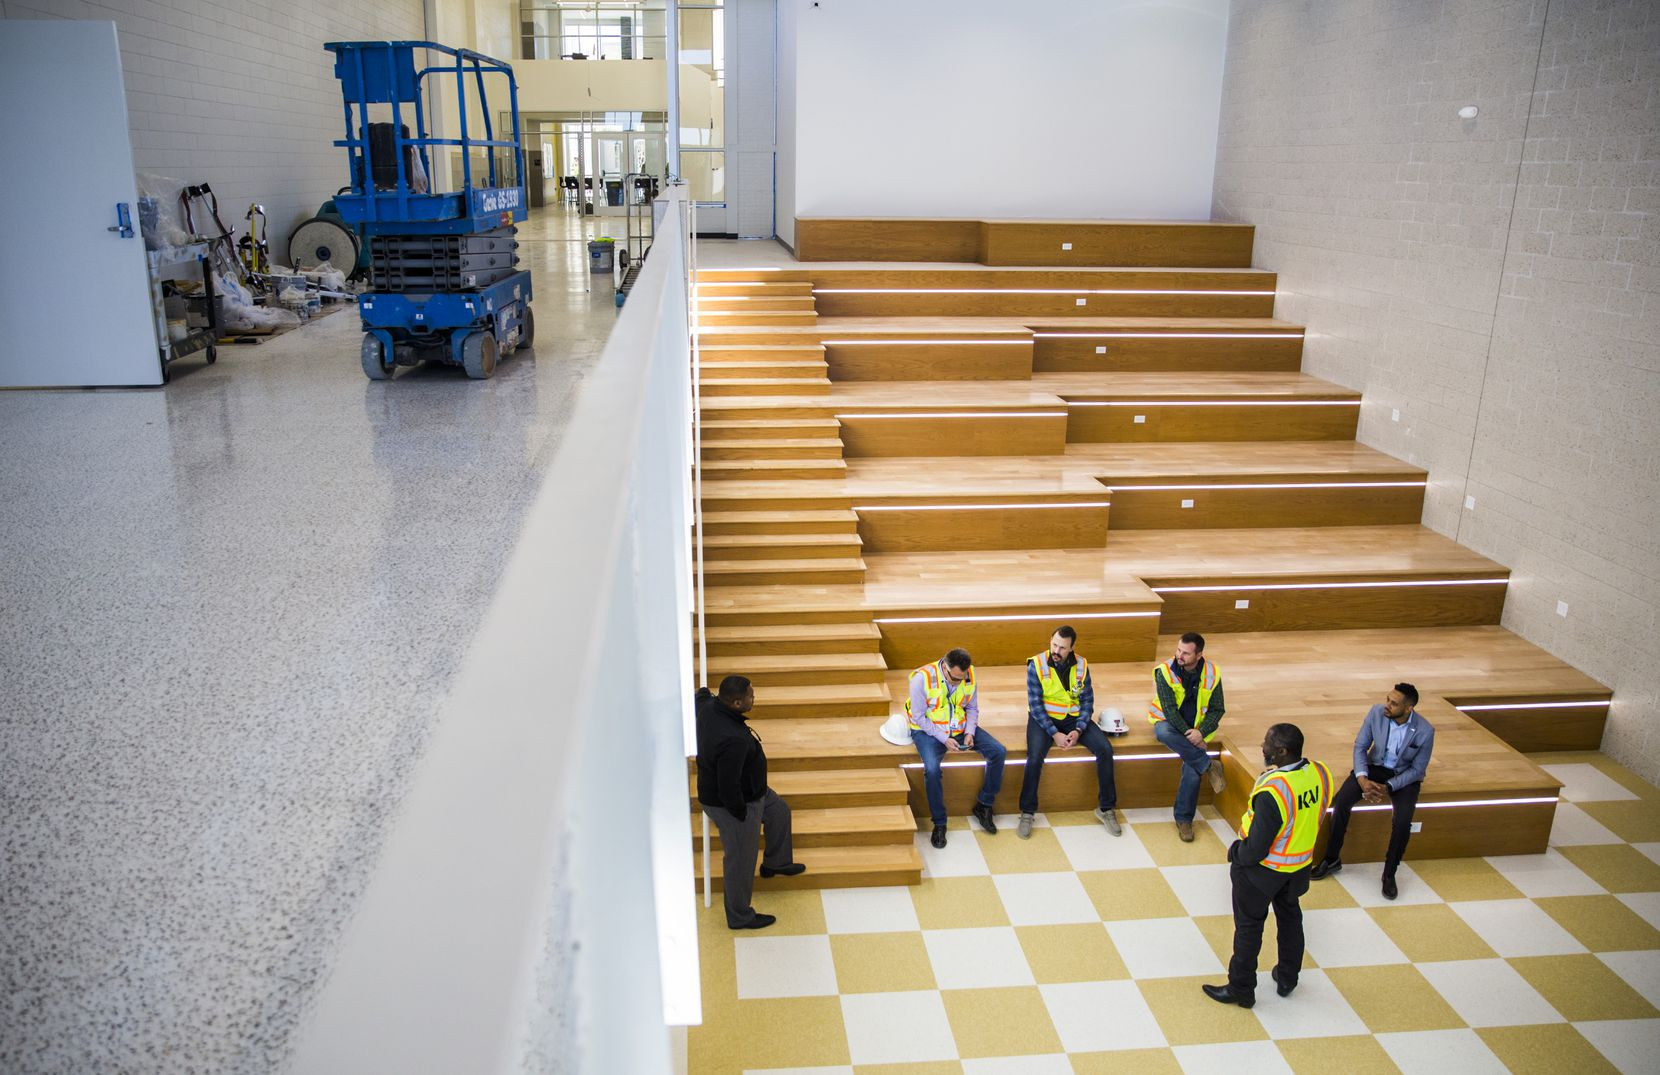 Workers chat in a main hallway and seating area on Thursday, December 19, 2019 at South Oak Cliff High School in Dallas. Workers are finishing a two-year, $52 million renovation to the campus. (Ashley Landis/The Dallas Morning News)